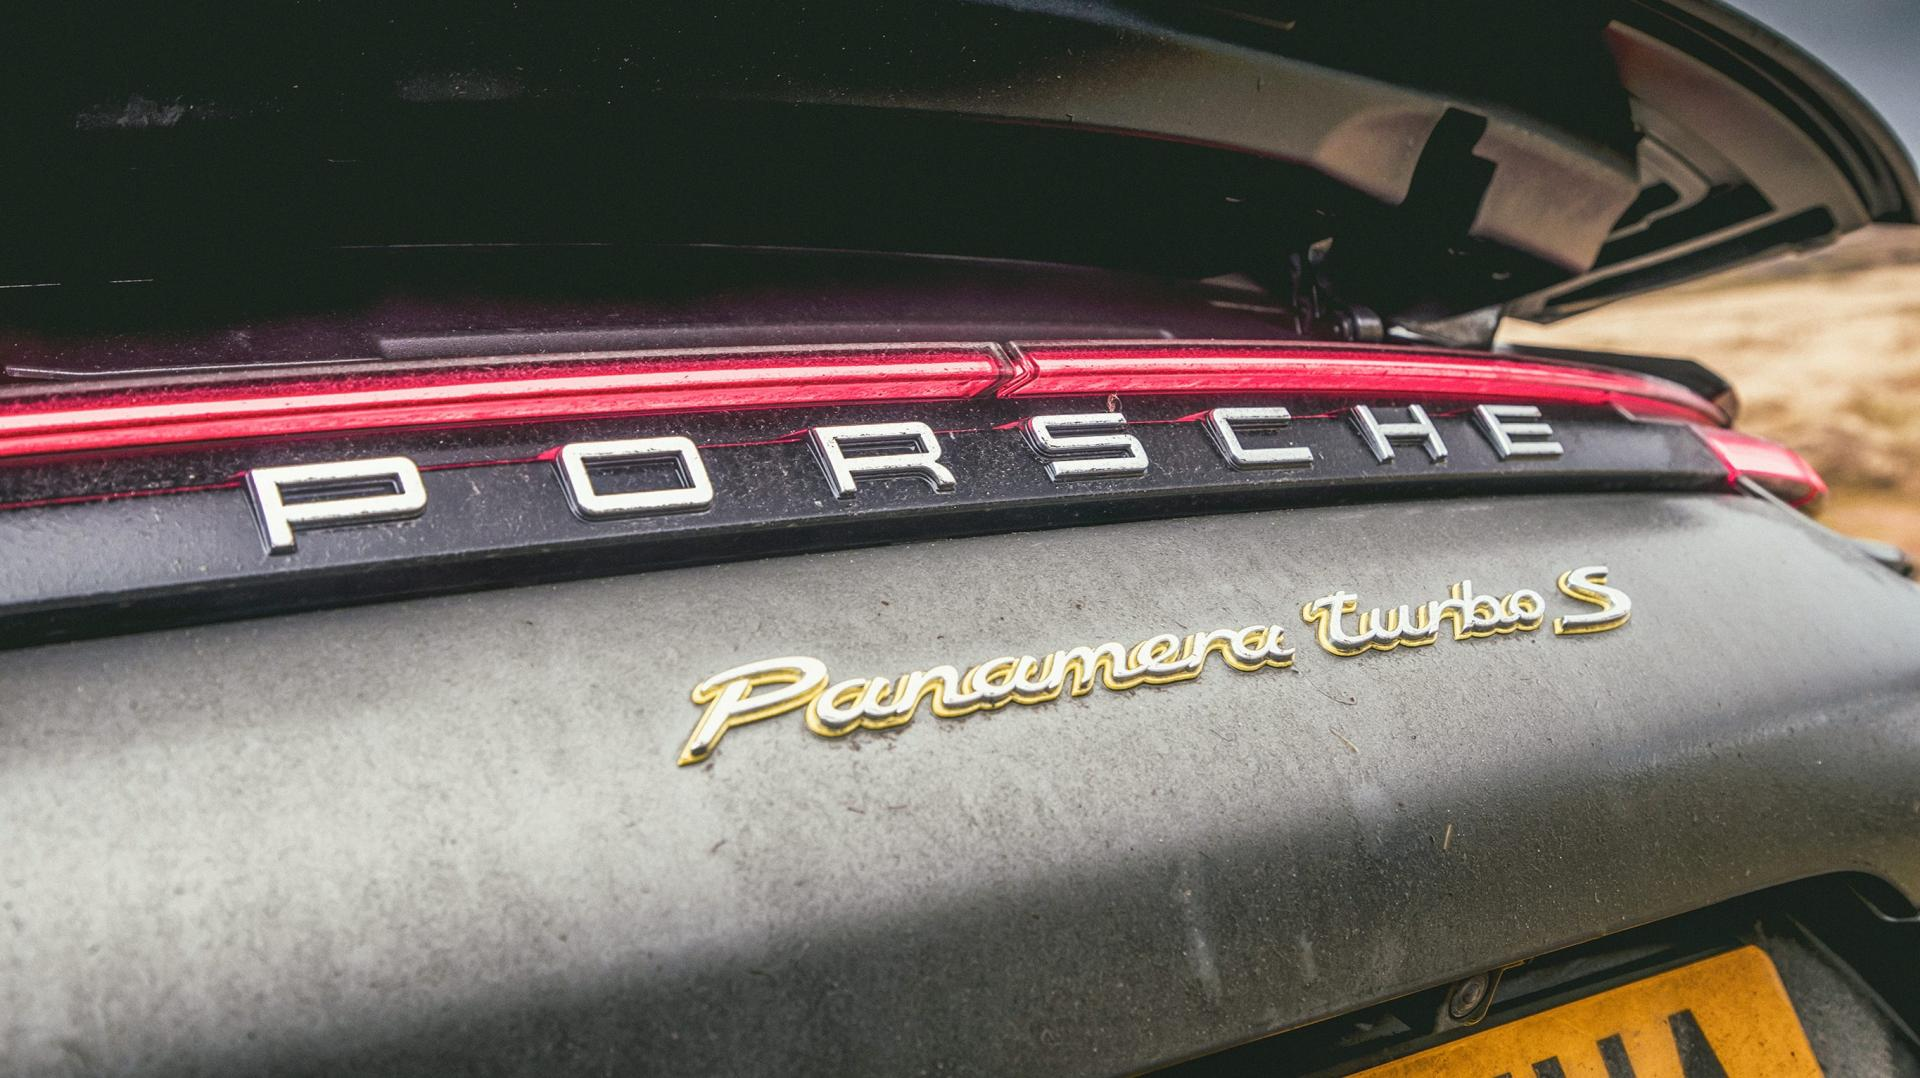 Porsche Panamera Turbo S E-Hybrid badge